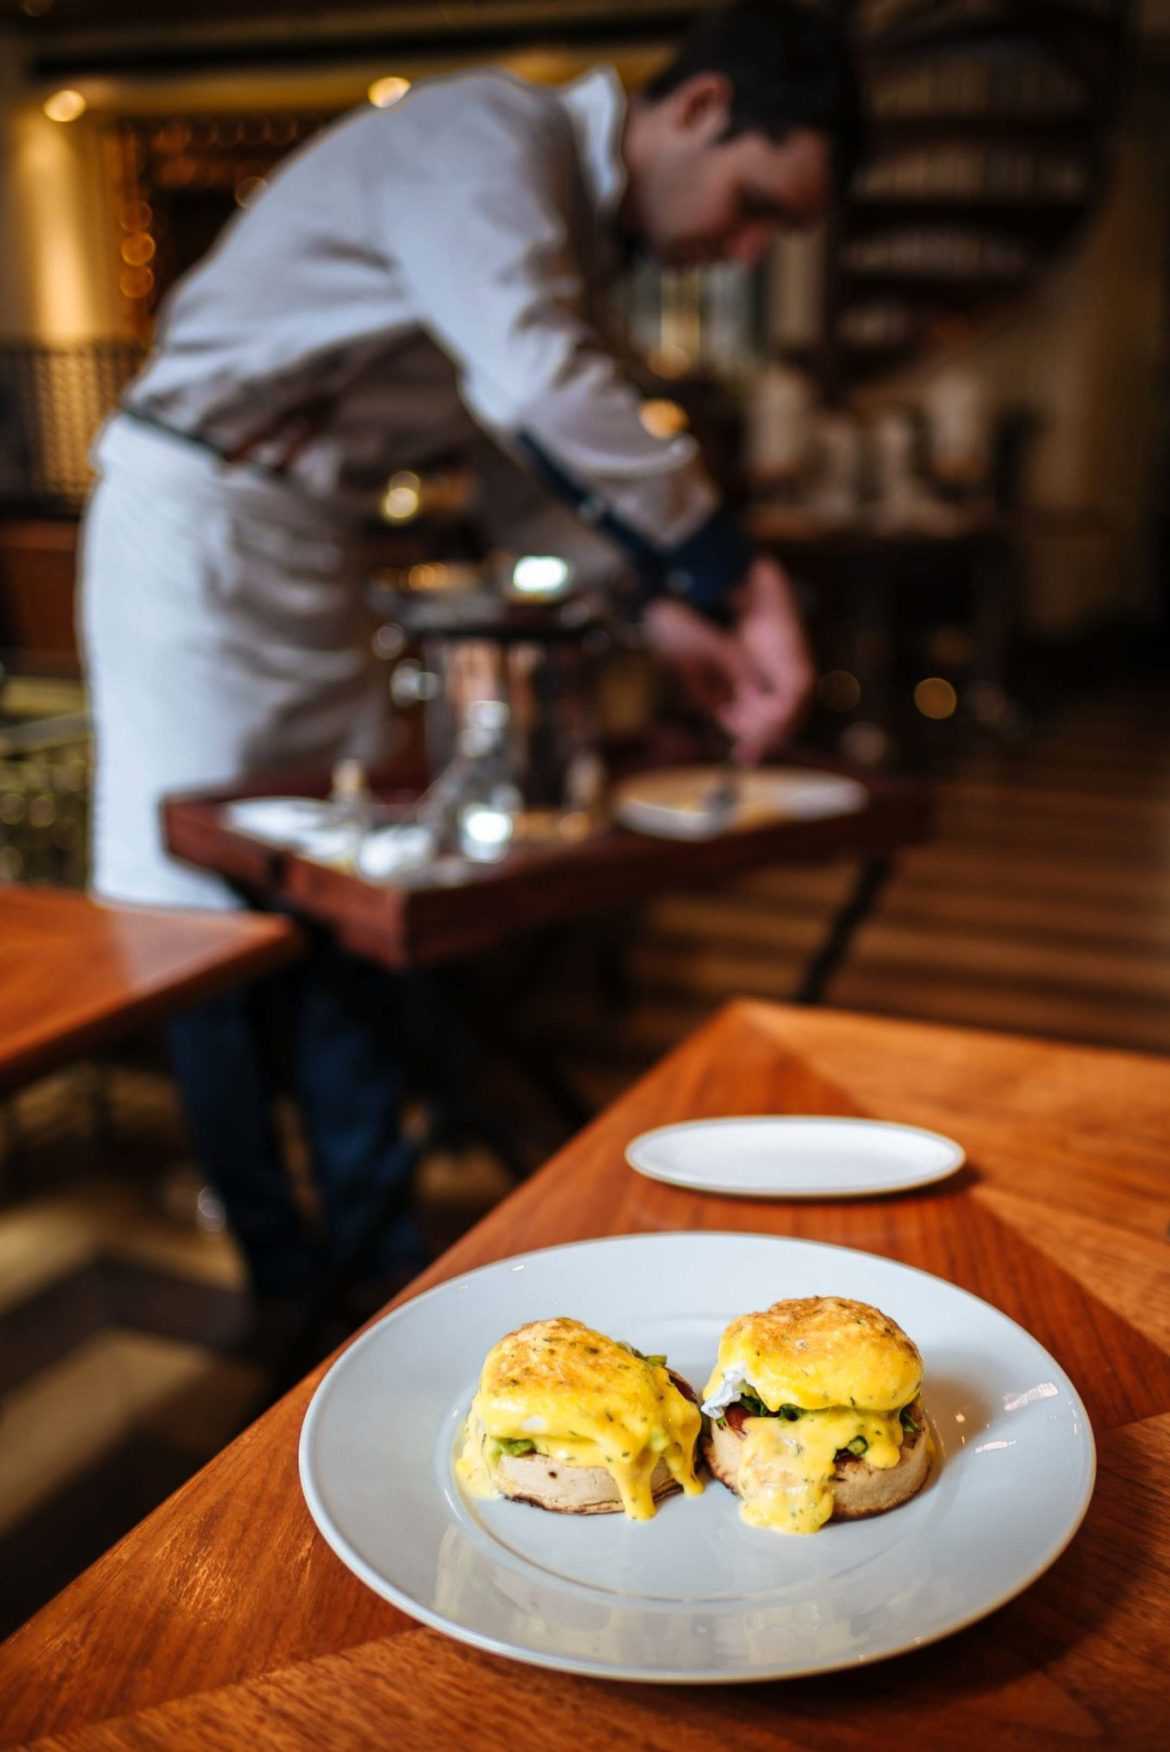 Breakfast with The Taste Edit at the Sofitel London St. James hotel